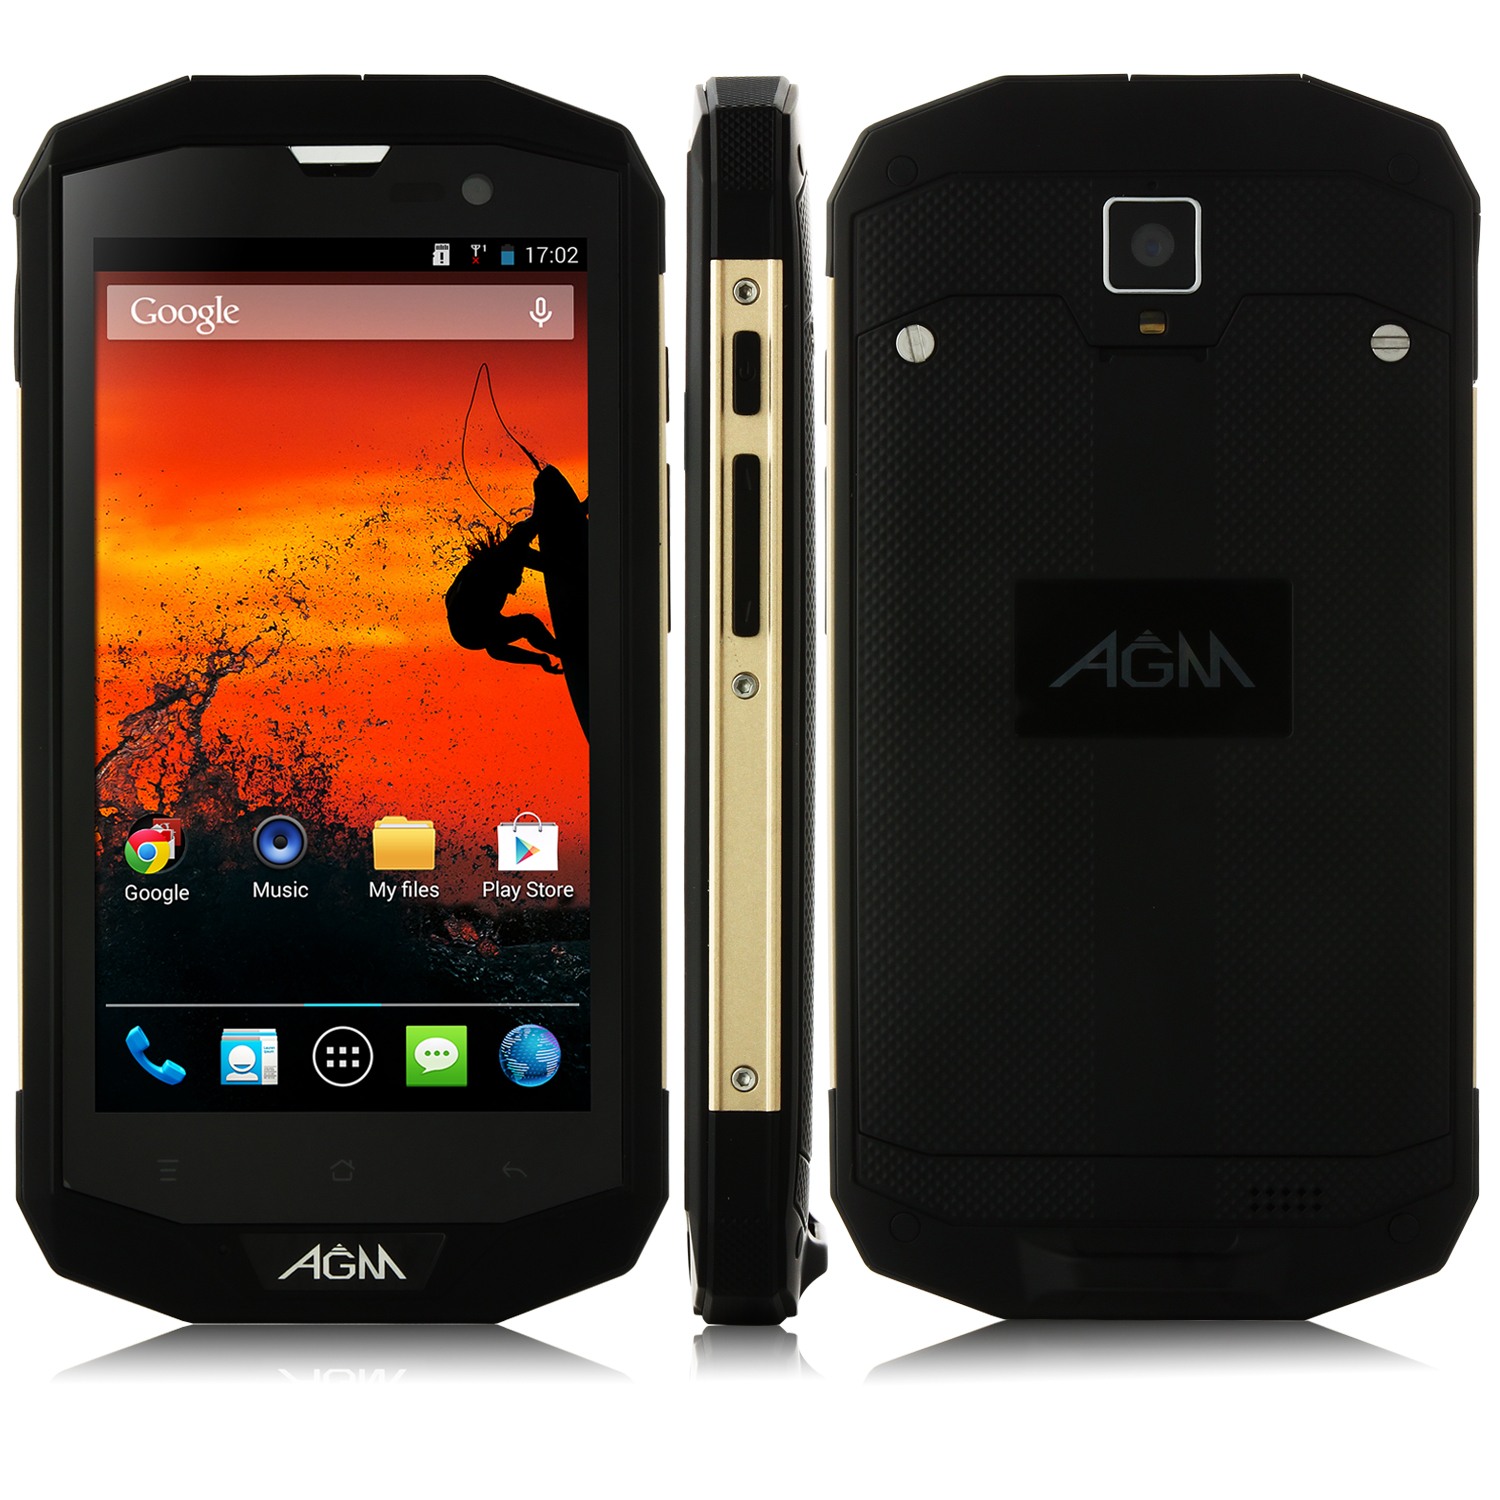 AGM STONE 5S Smartphone 4G LTE Quad Core IP67 Tri-proof 1GB 8GB 4050mAh 5.0 Inch Black